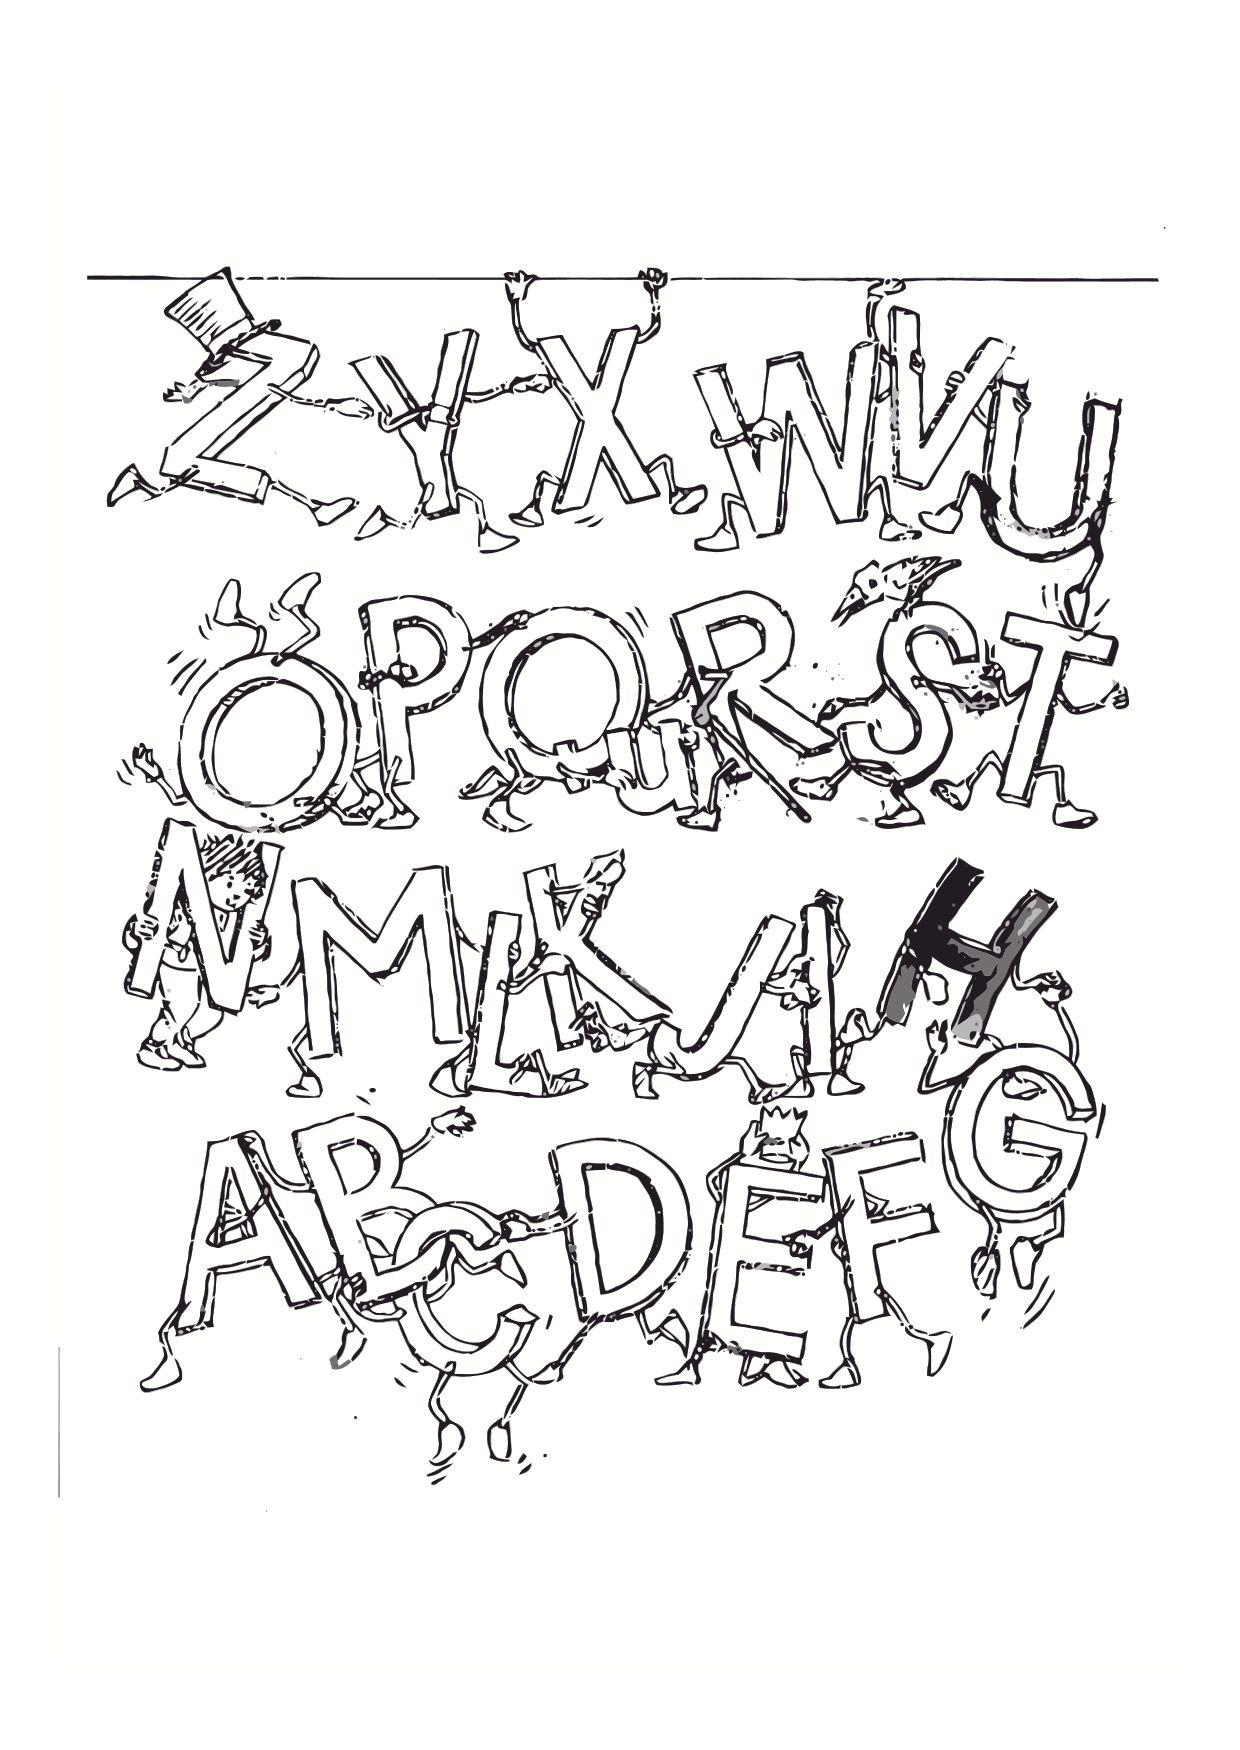 Alphabet Fun Alphabet Coloring Pages For Kids To Print